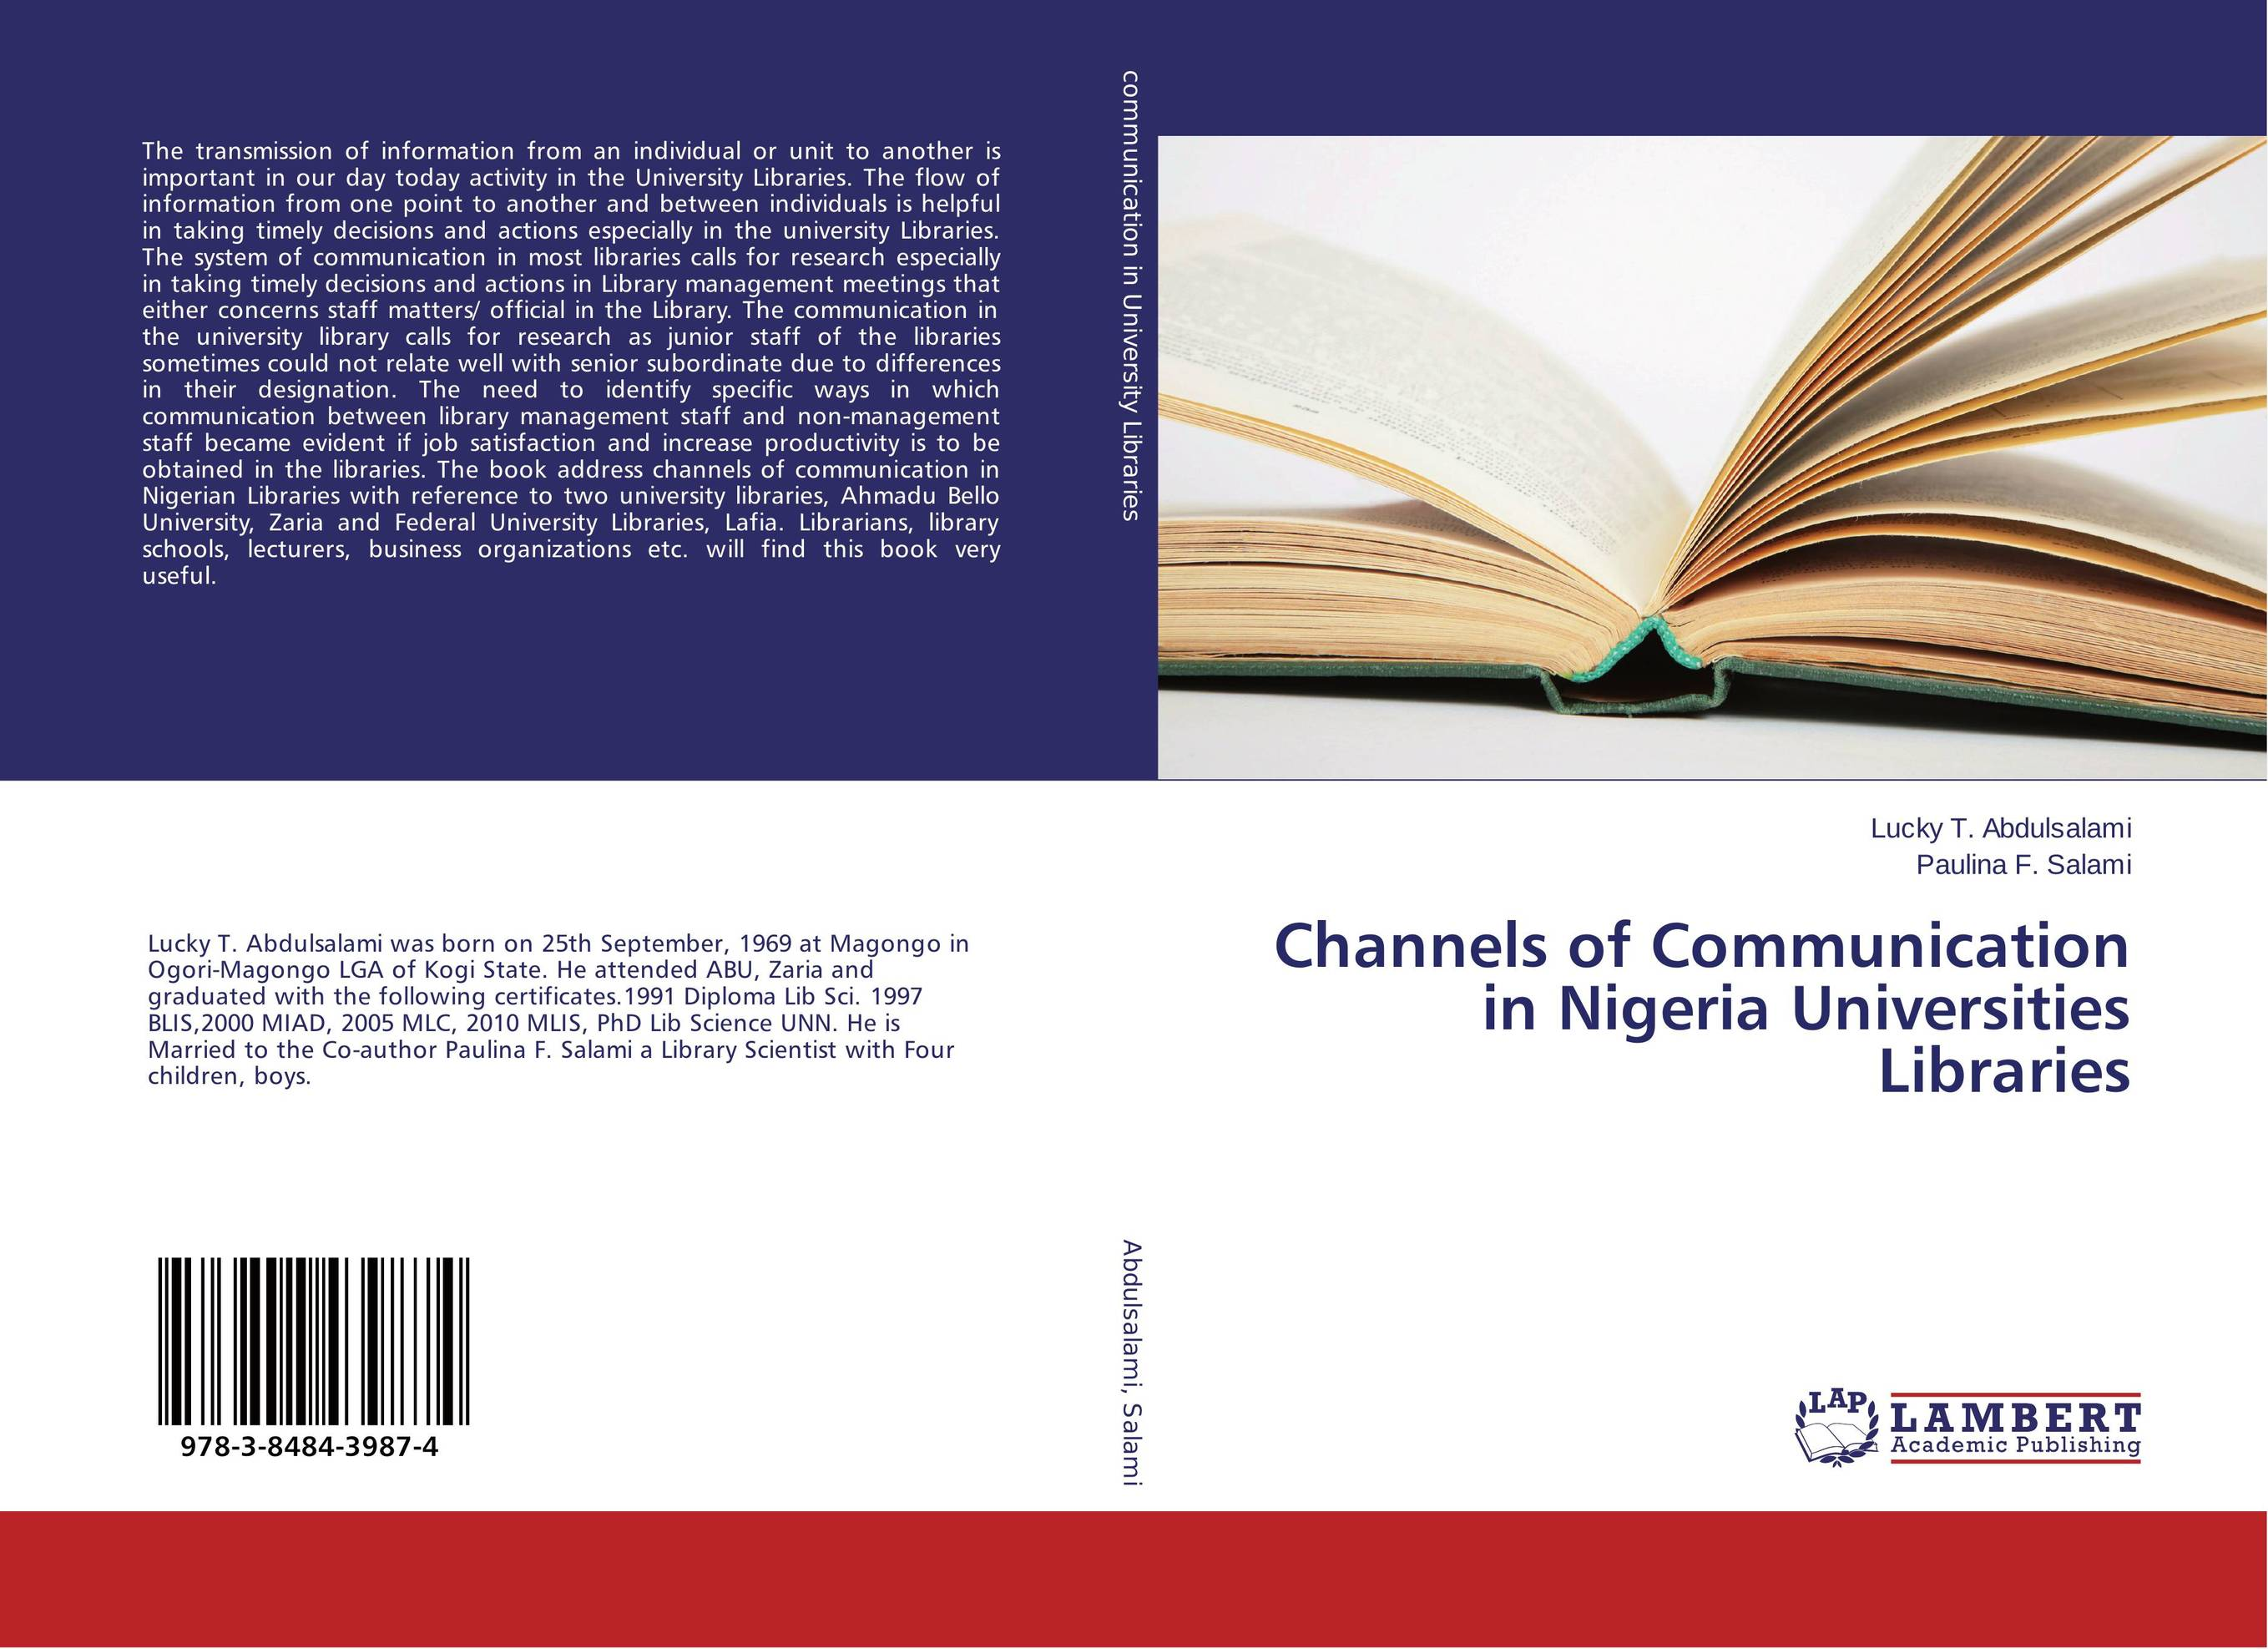 купить Channels of Communication in Nigeria Universities Libraries недорого